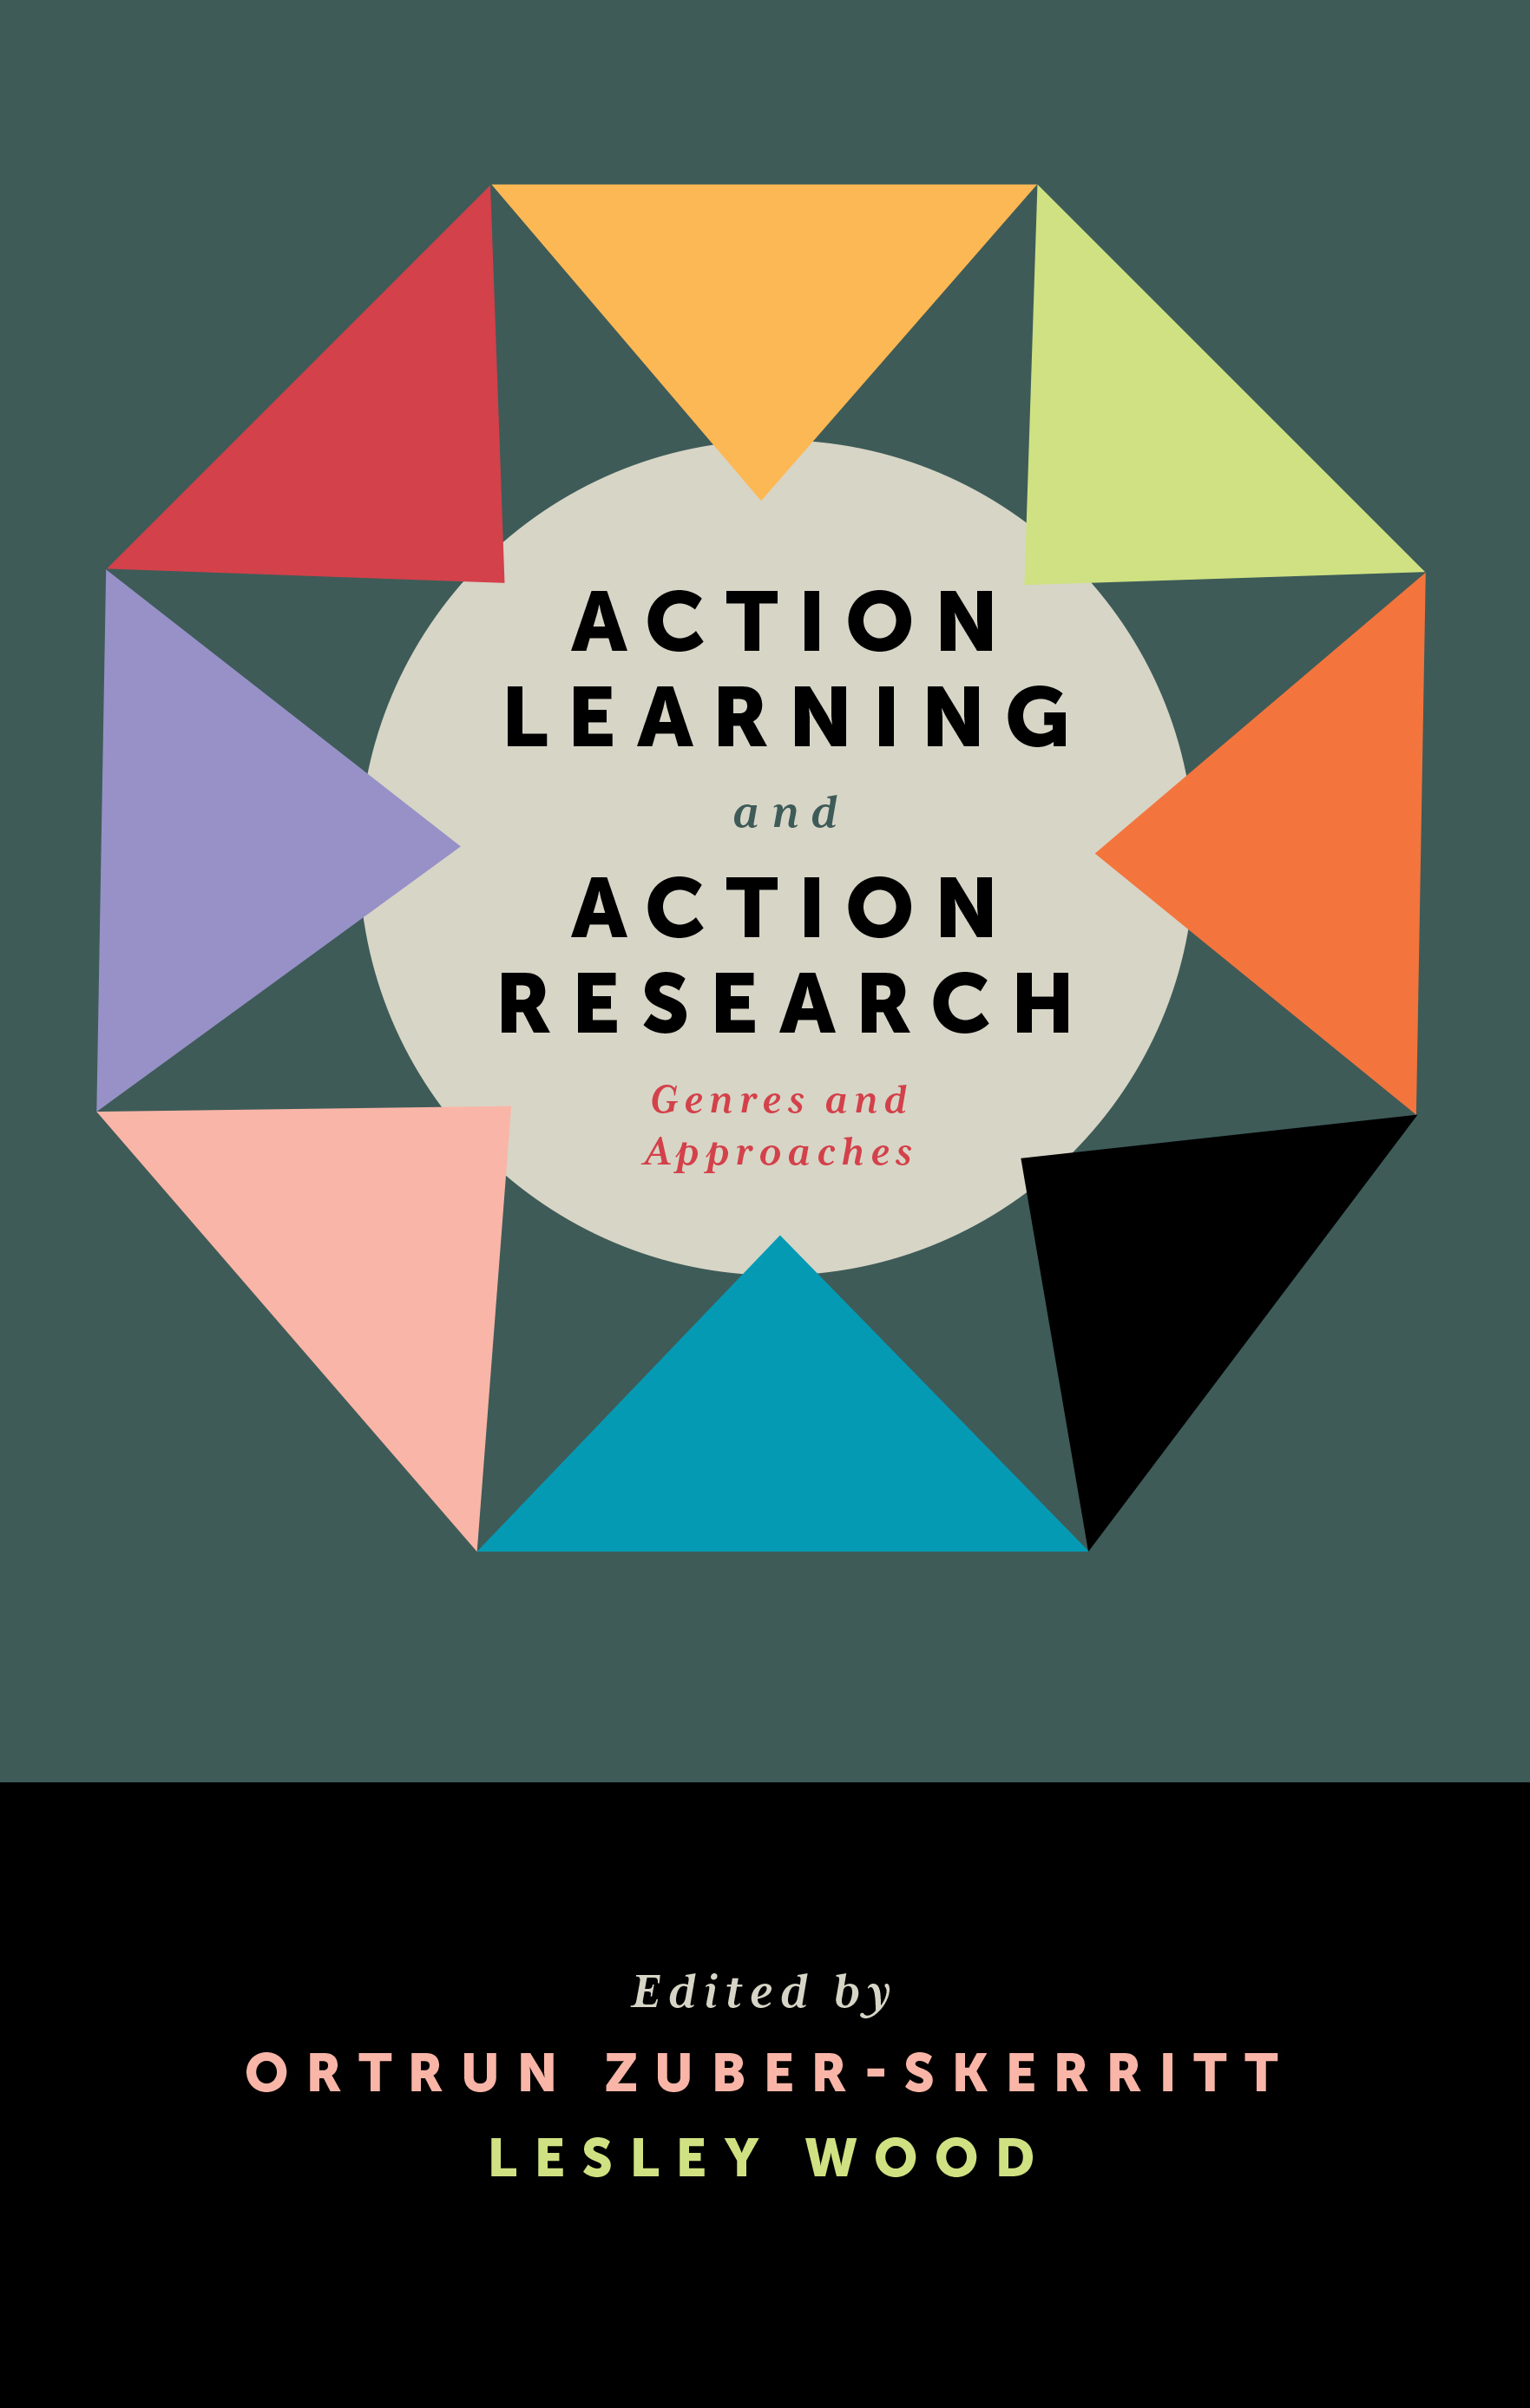 Book cover for Action Learning and Action Research:  Genres and Approaches a book by Lesley Wood, Ortrun Zuber-Skerritt